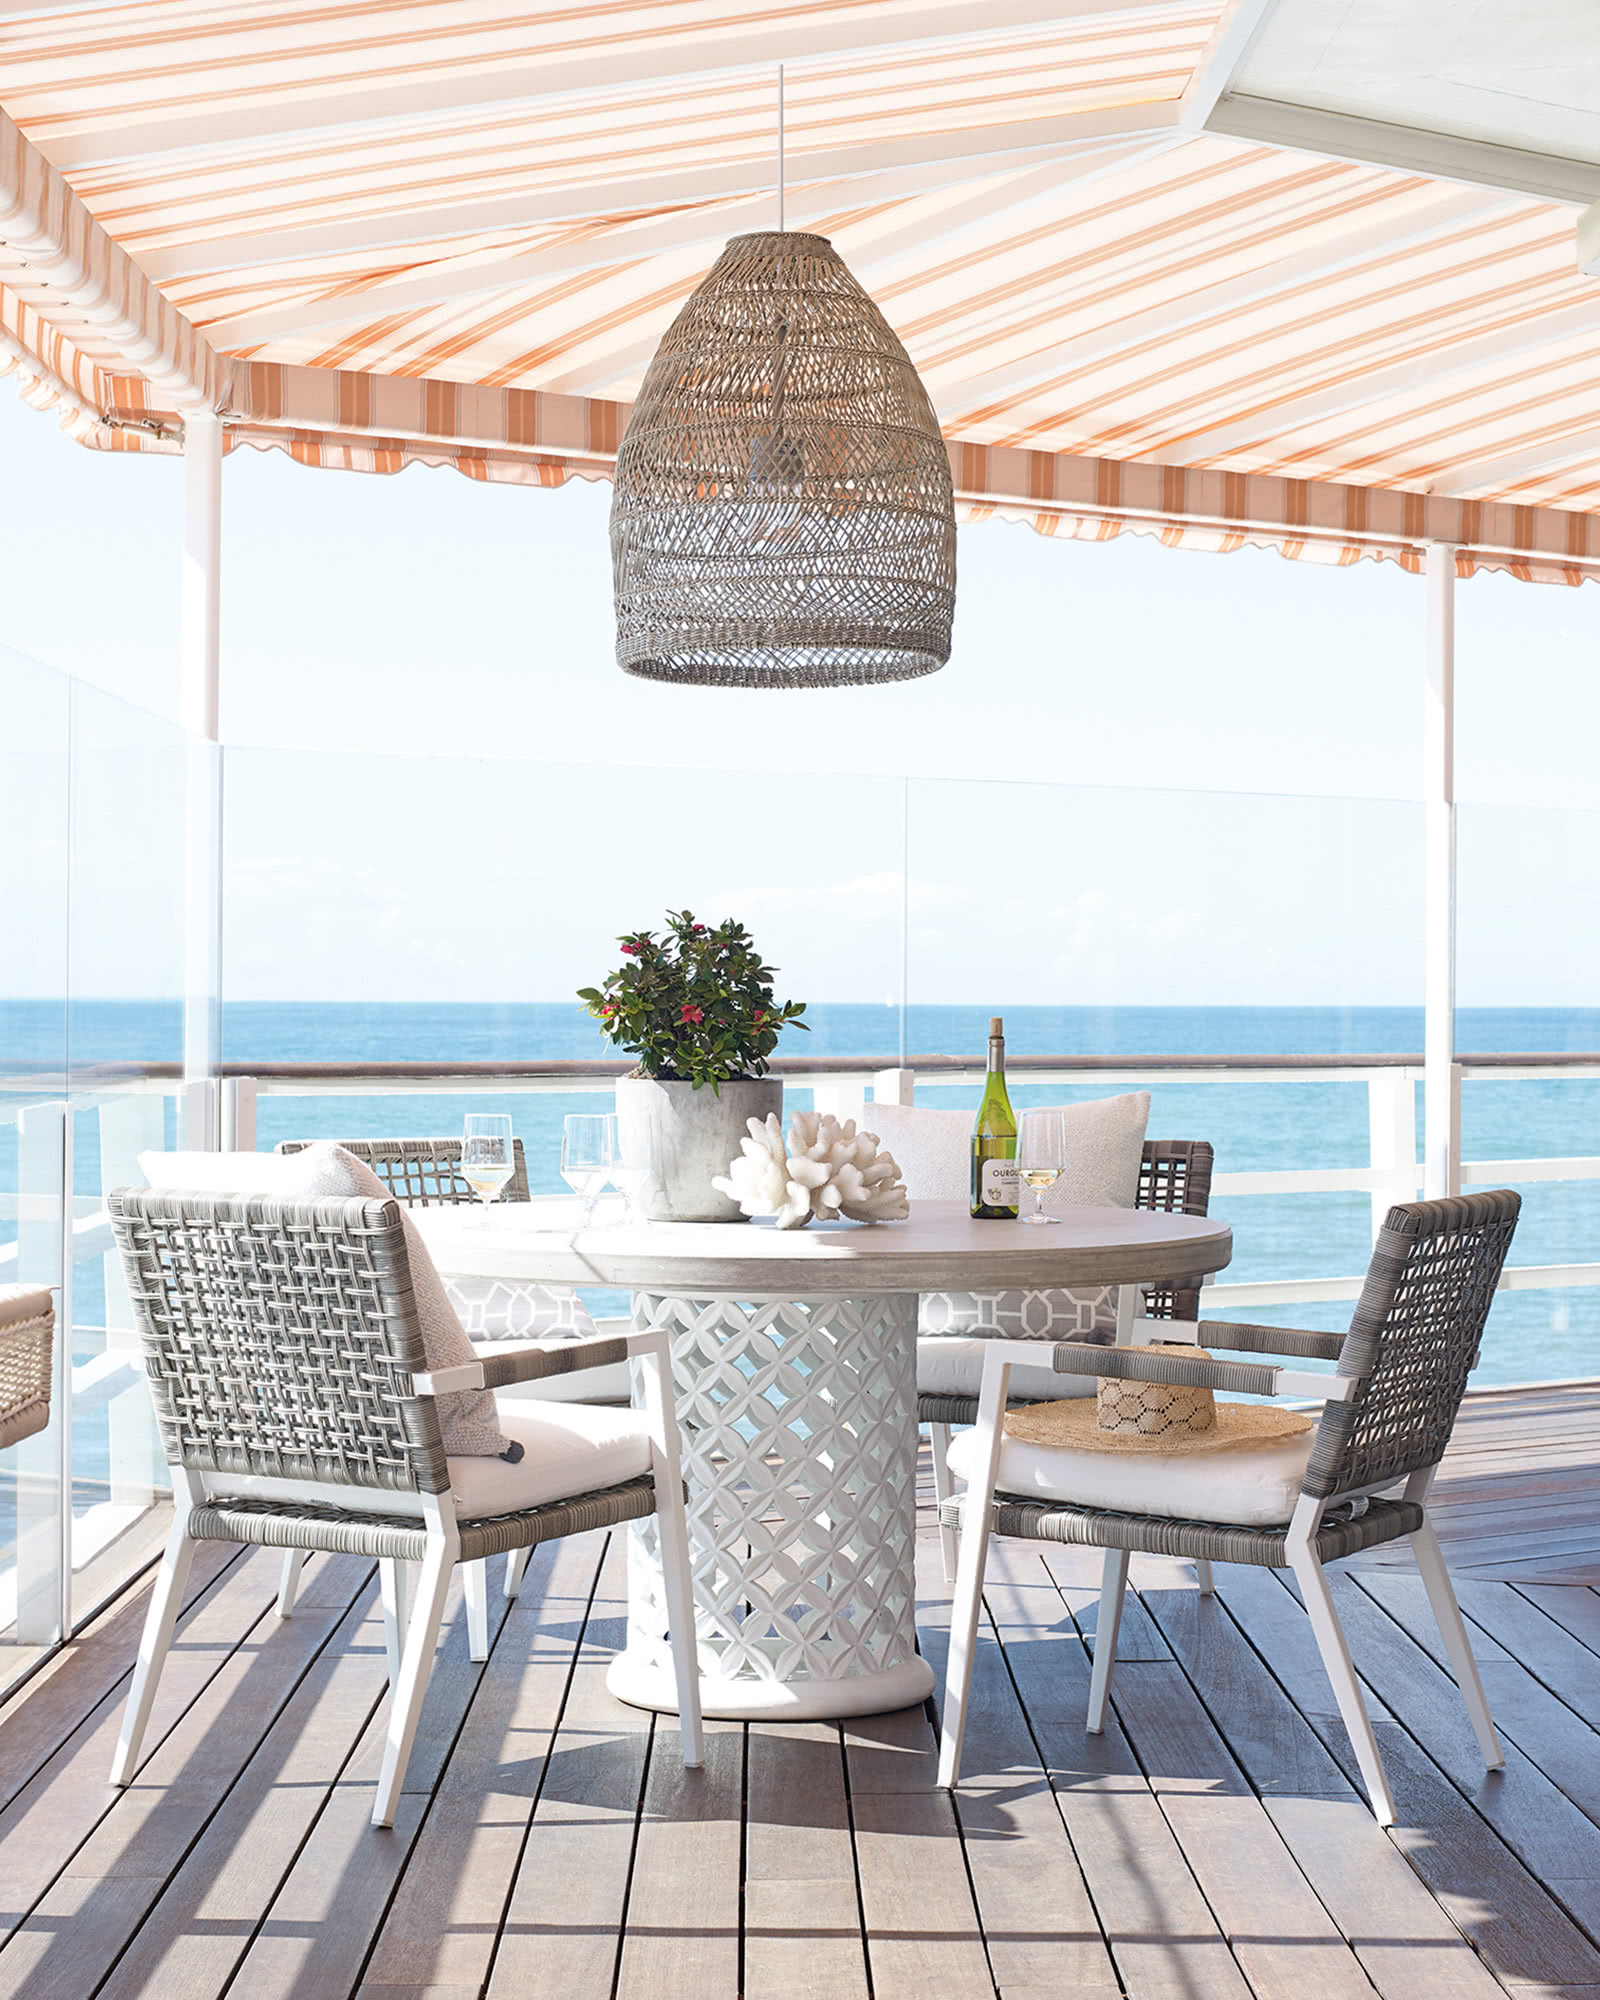 Image via Serena & Lily feat. 'Summerland' Outdoor Bell Pendant in Harbor Grey (Large - 21-inch w) - 15+ Stylish Oversized and Extra Large Rattan Pendant Light Options